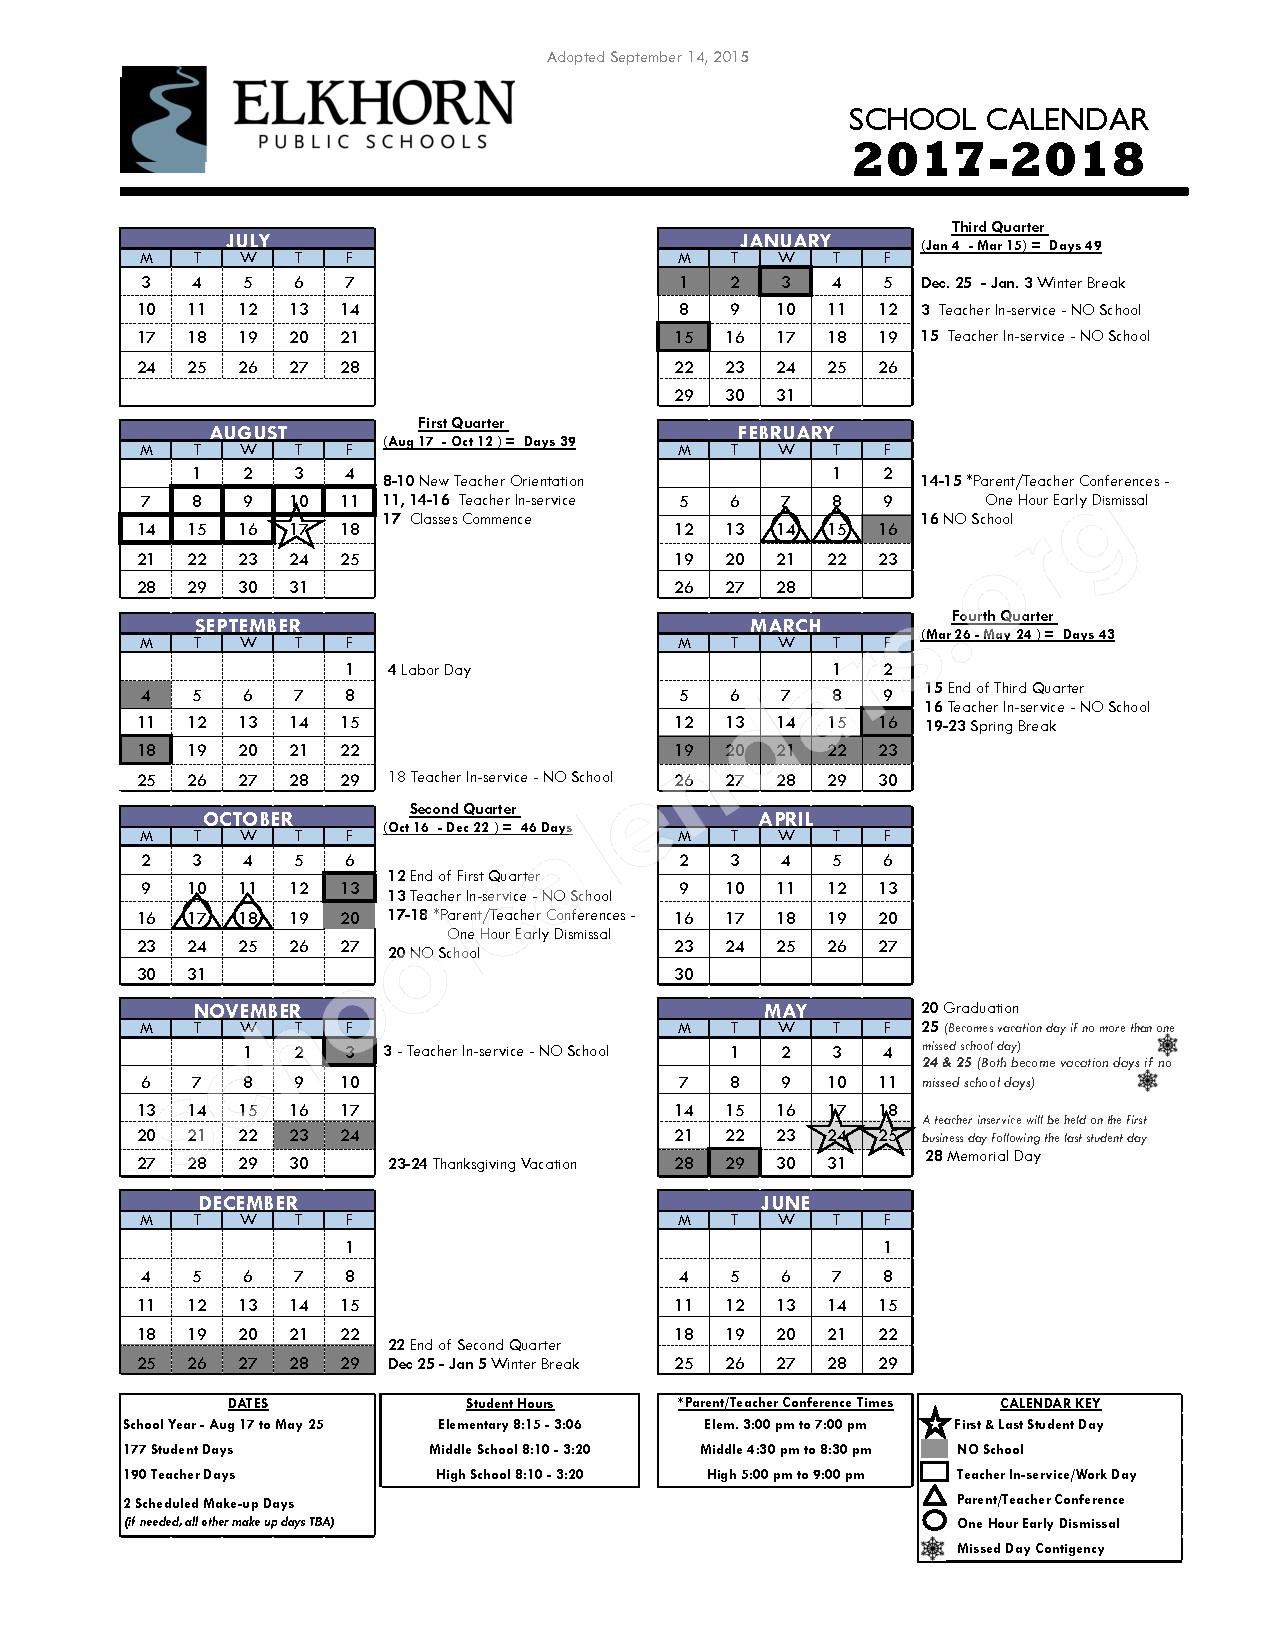 2017 - 2018 District Calendar – Elkhorn Public Schools – page 1